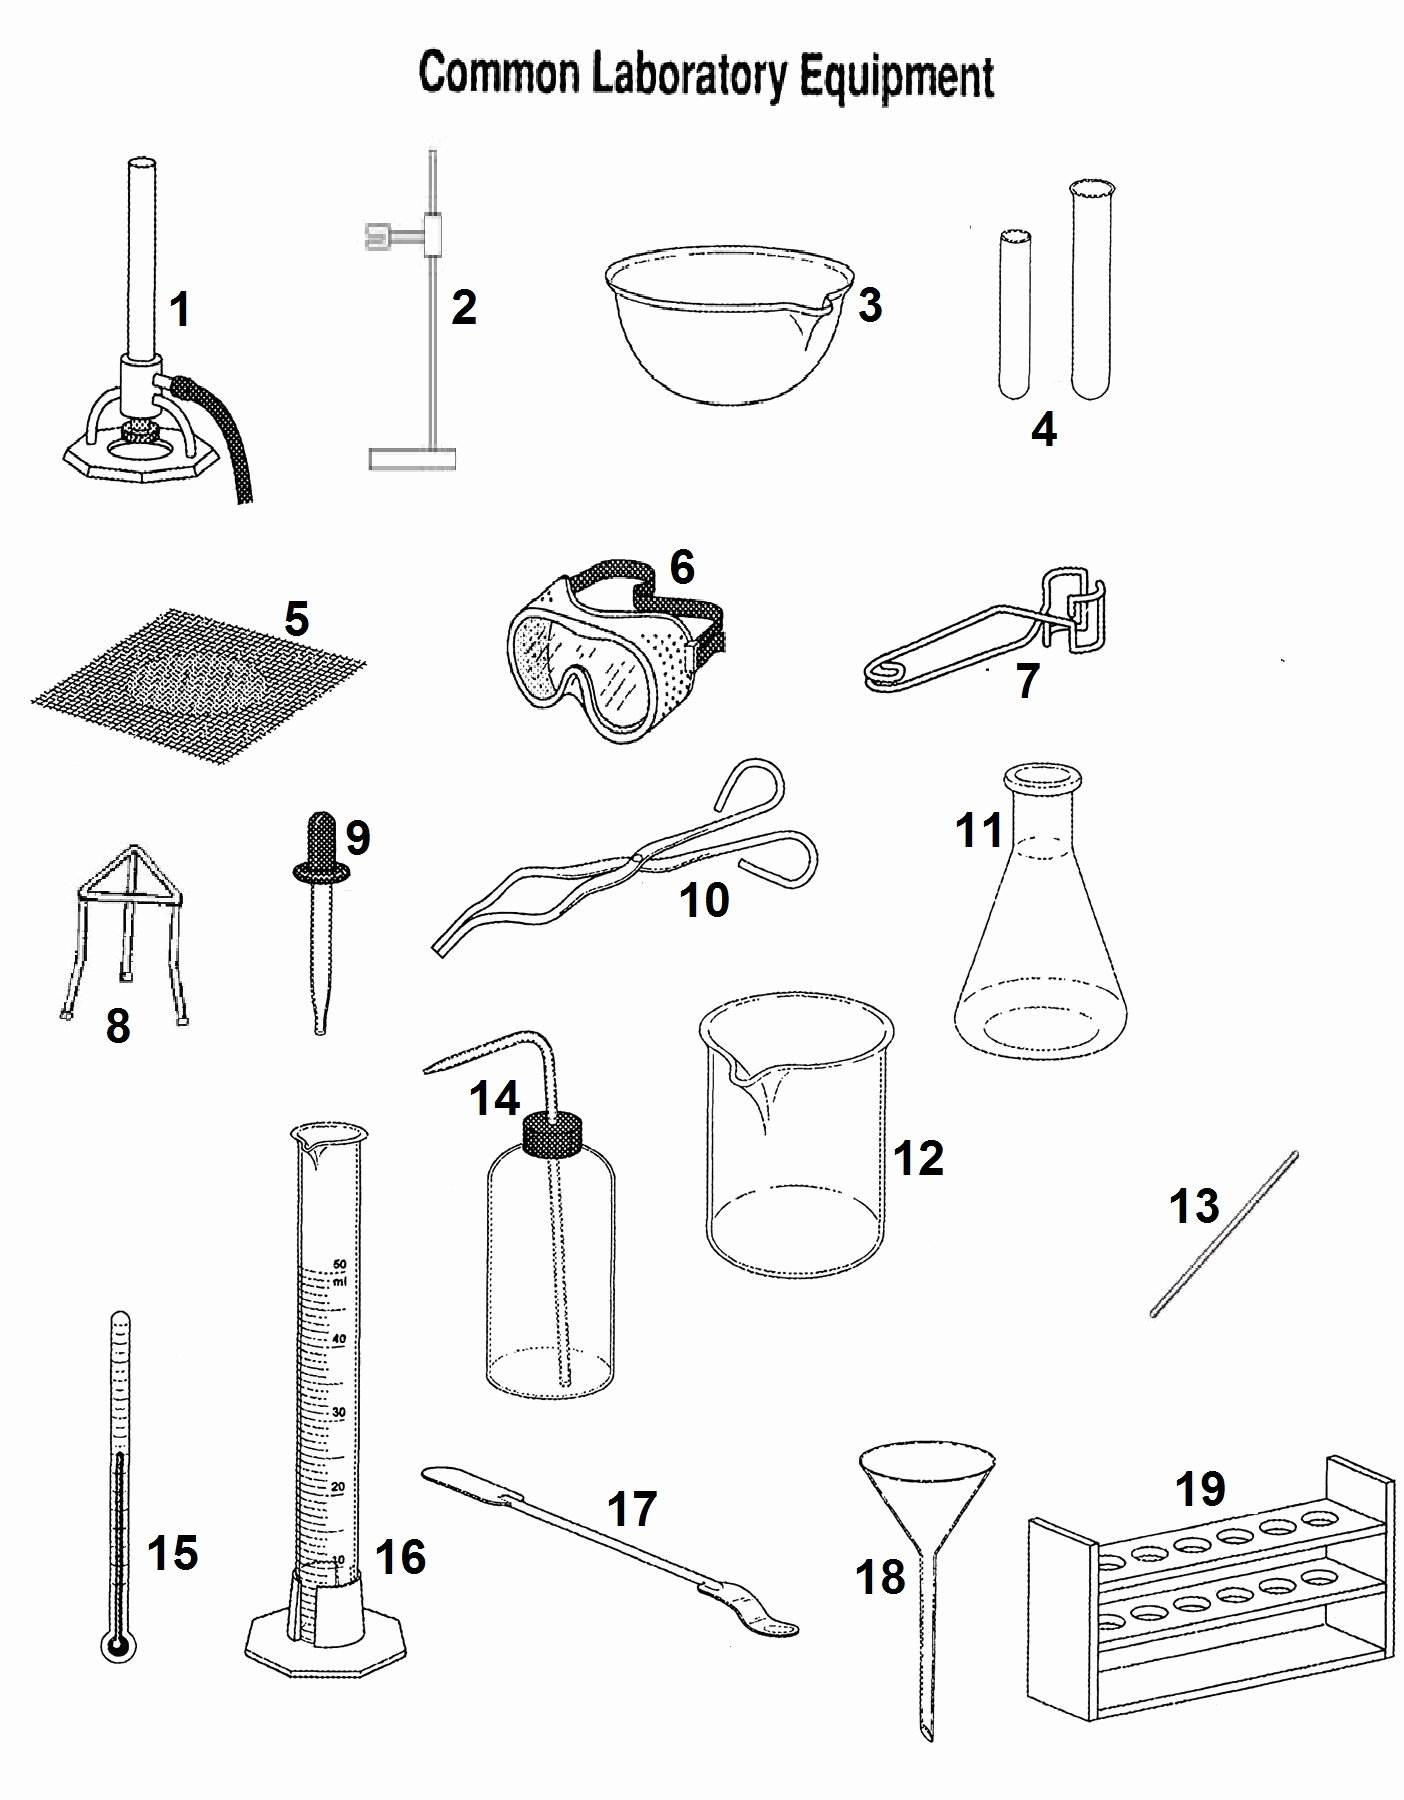 Chemistry Lab Equipment Worksheet New 40 Lab Equipment Worksheet Go Back Gallery for Chemistry